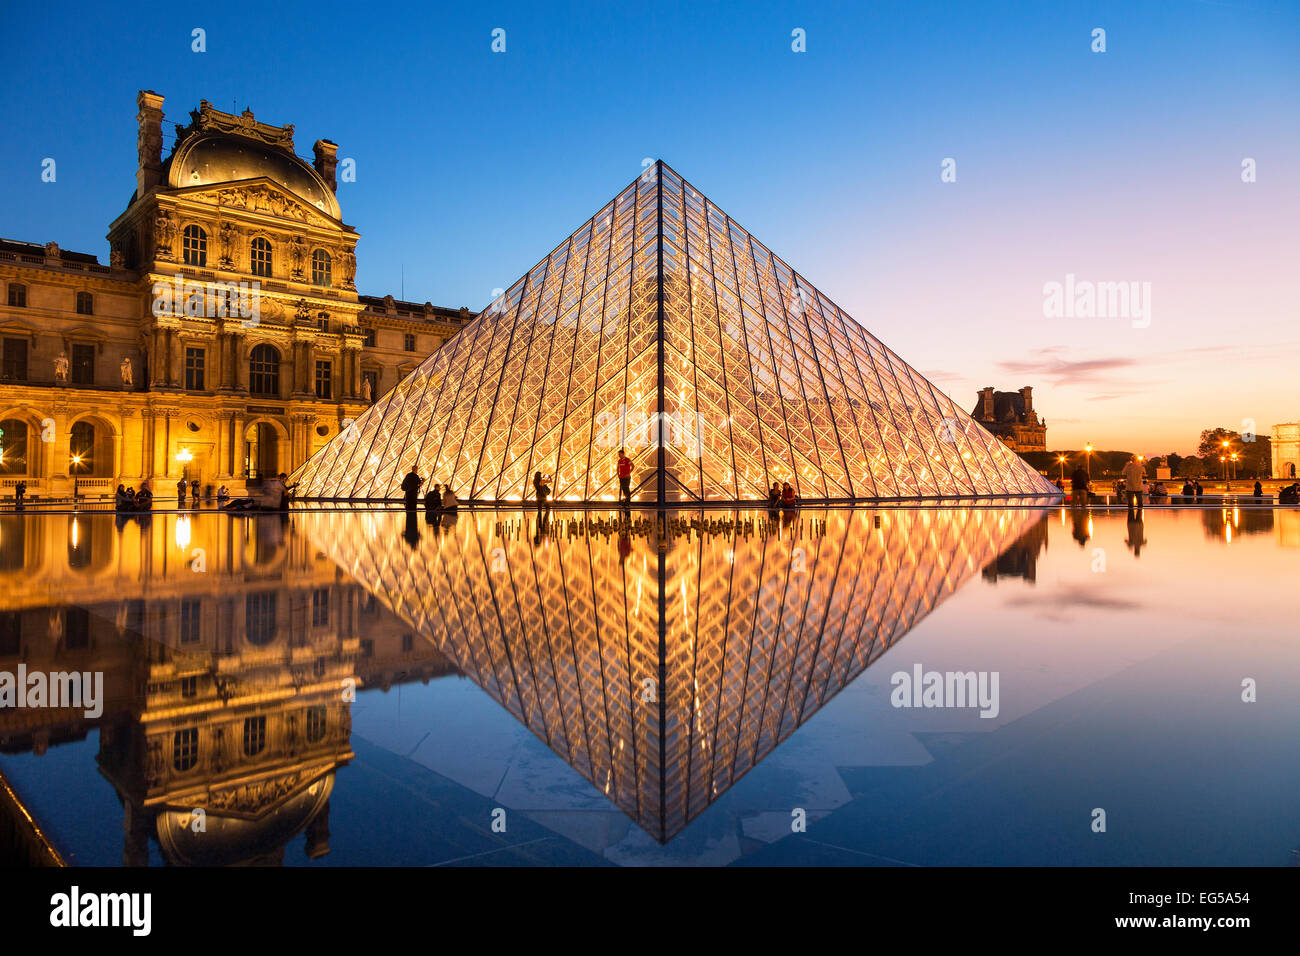 Paris, louvre pyramid at dusk - Stock Image